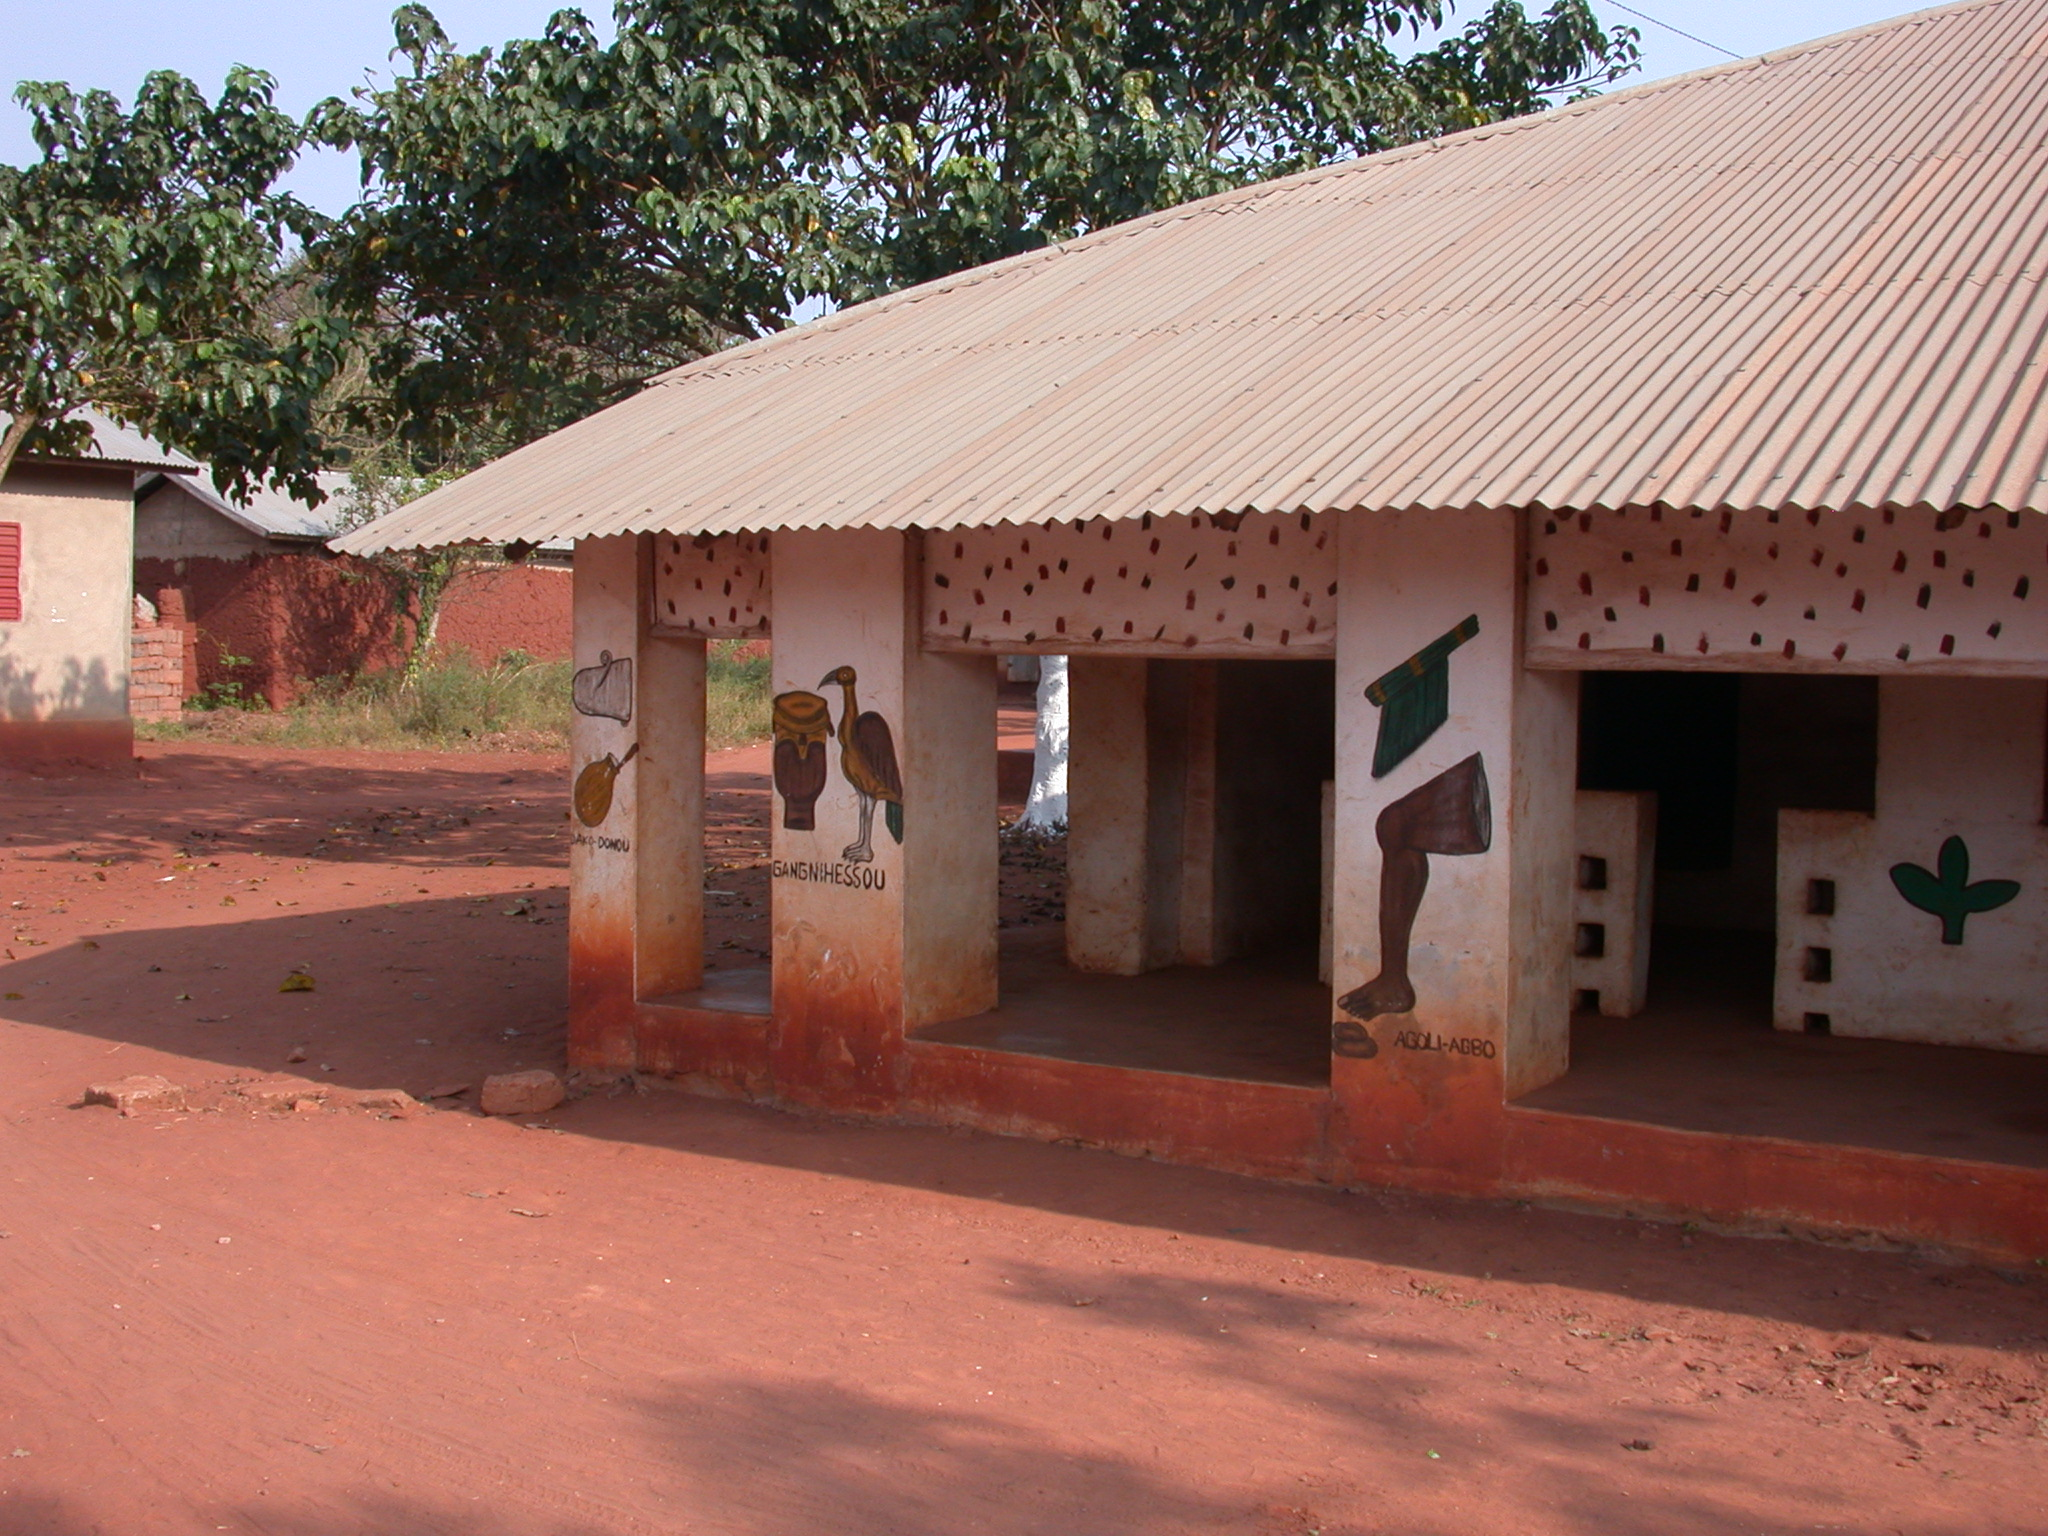 Left Side of Zomadonou Akaba Temple With Symbols of  Dako-Donou, Gangnihessou, and Agoli-Agbo, Abomey, Benin